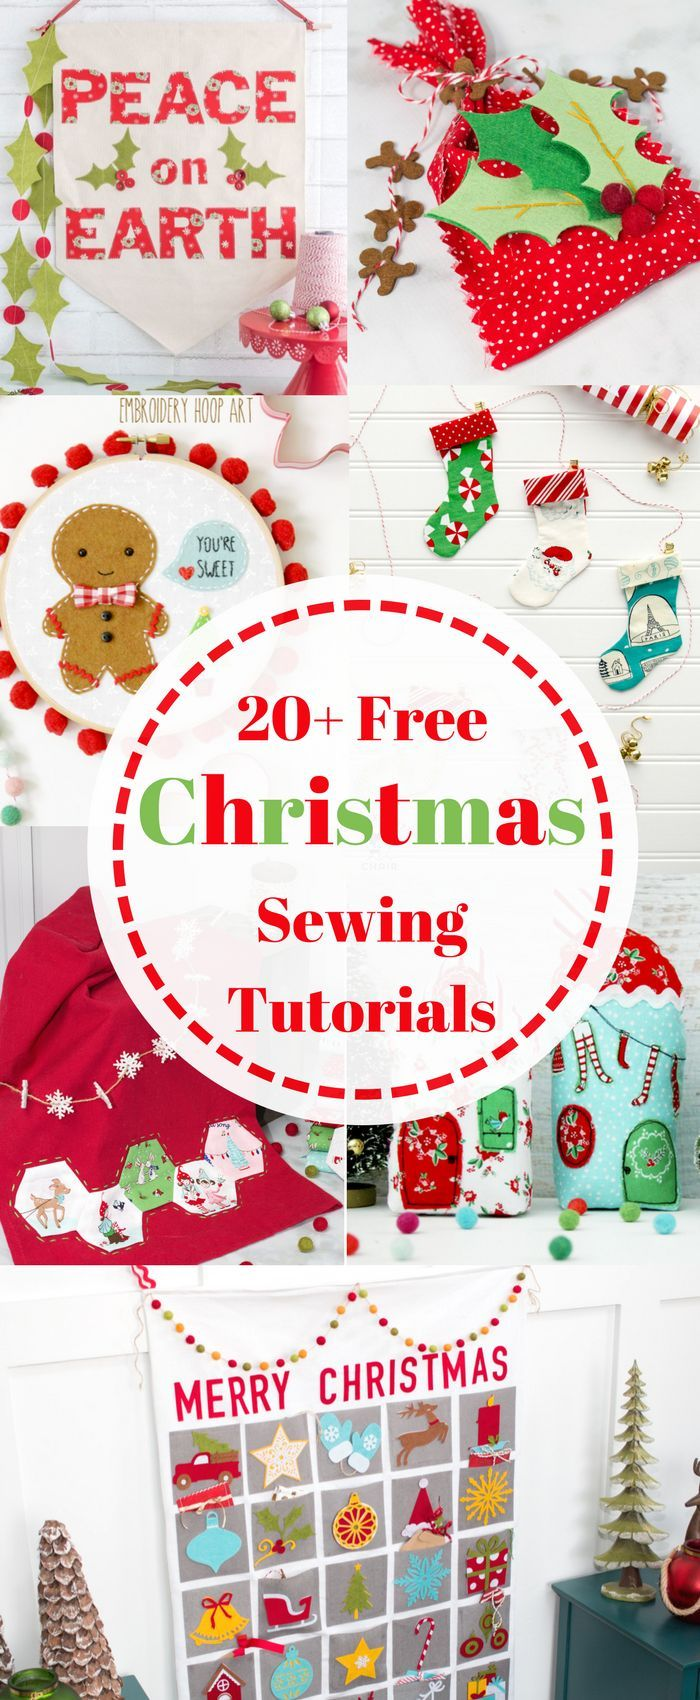 20+ Christmas Sewing Projects | Pinterest | Tutorial sewing, Free ...